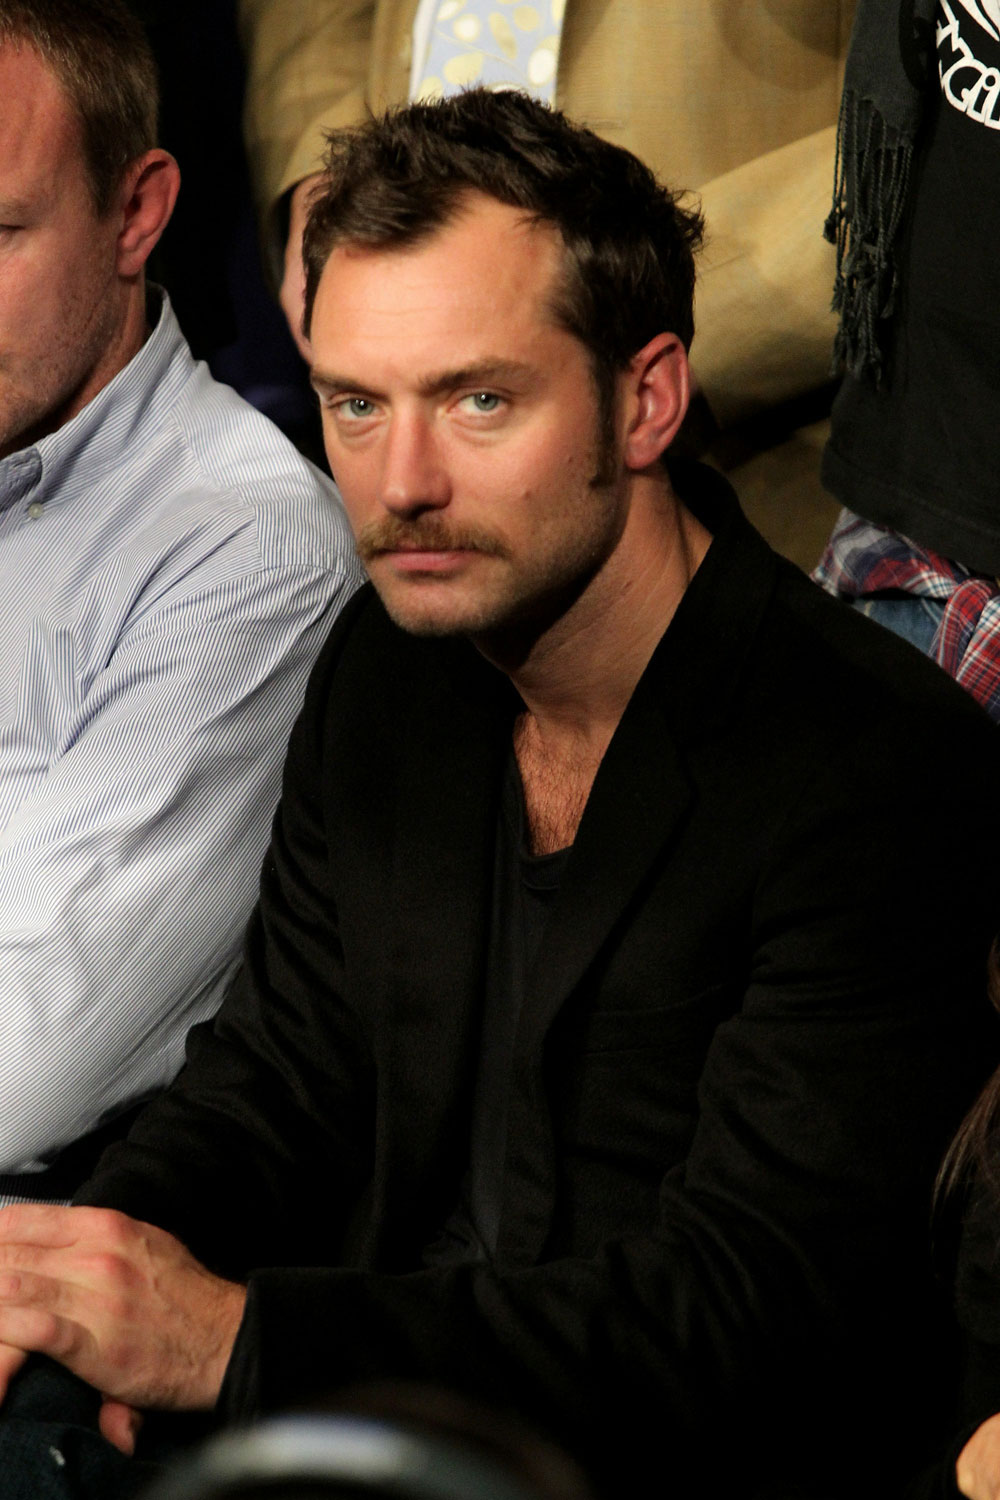 UFC 120: Jude Law watches the fight.